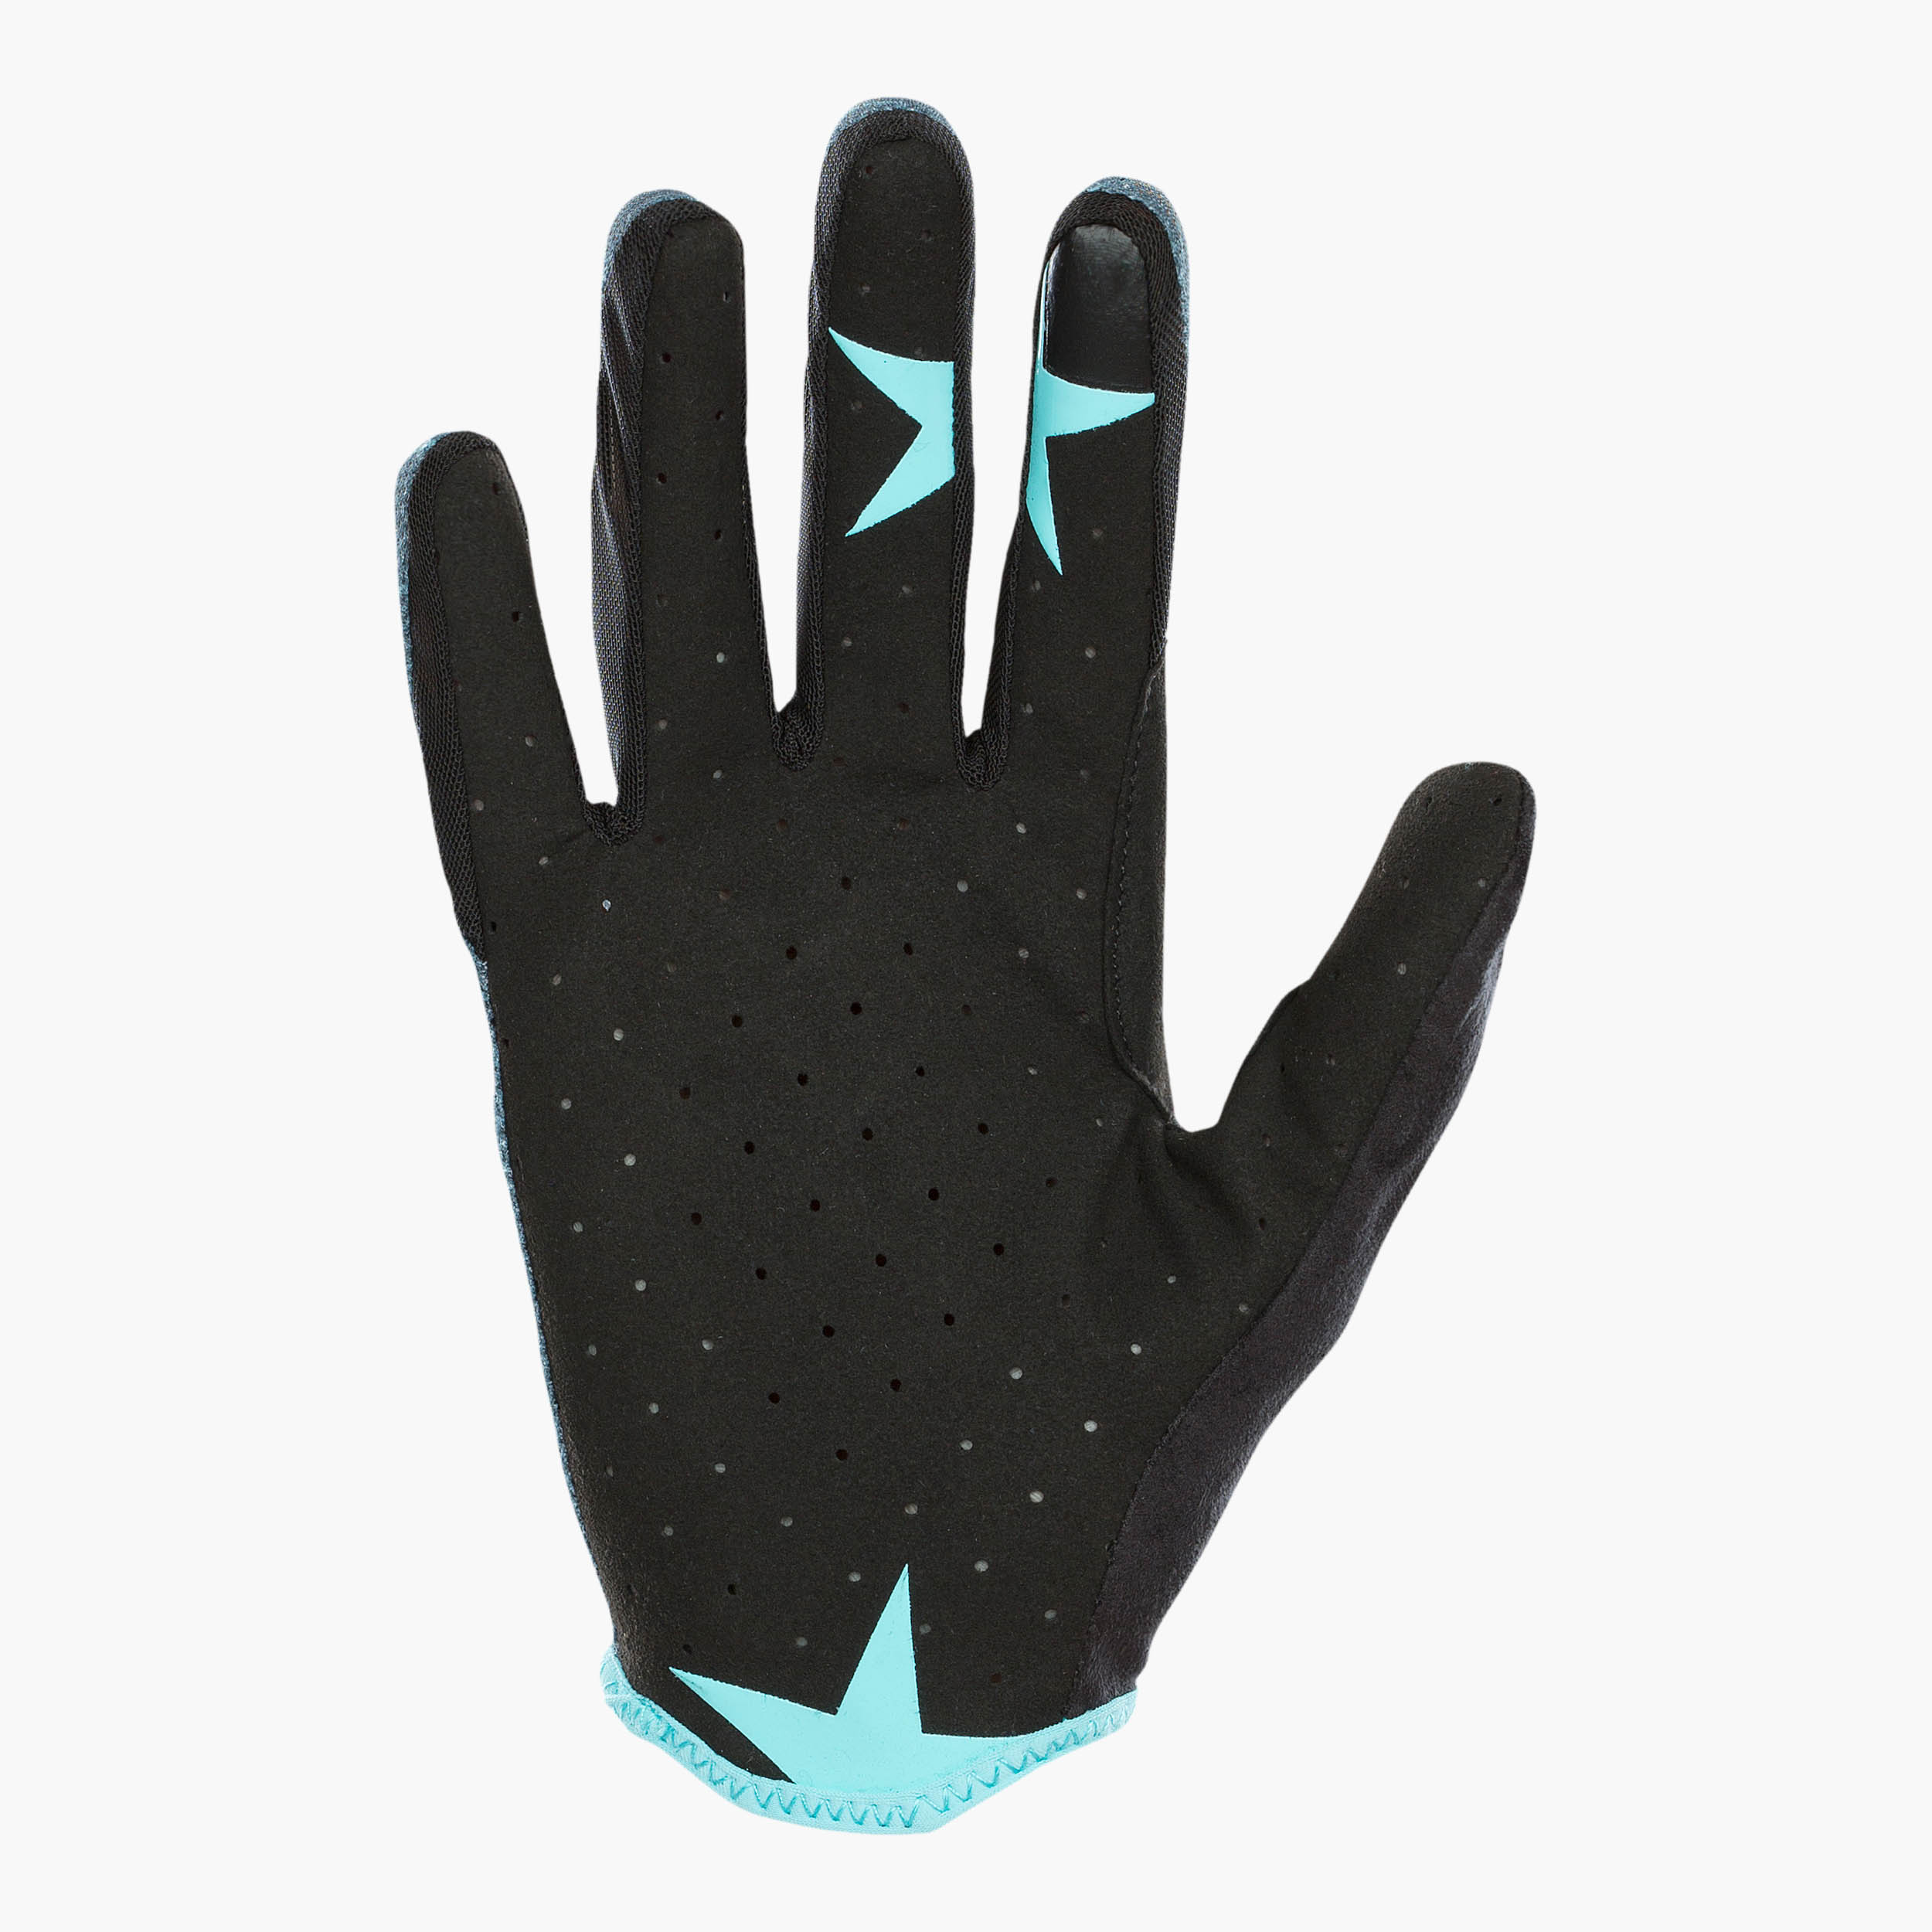 LITE TOUCH GLOVE